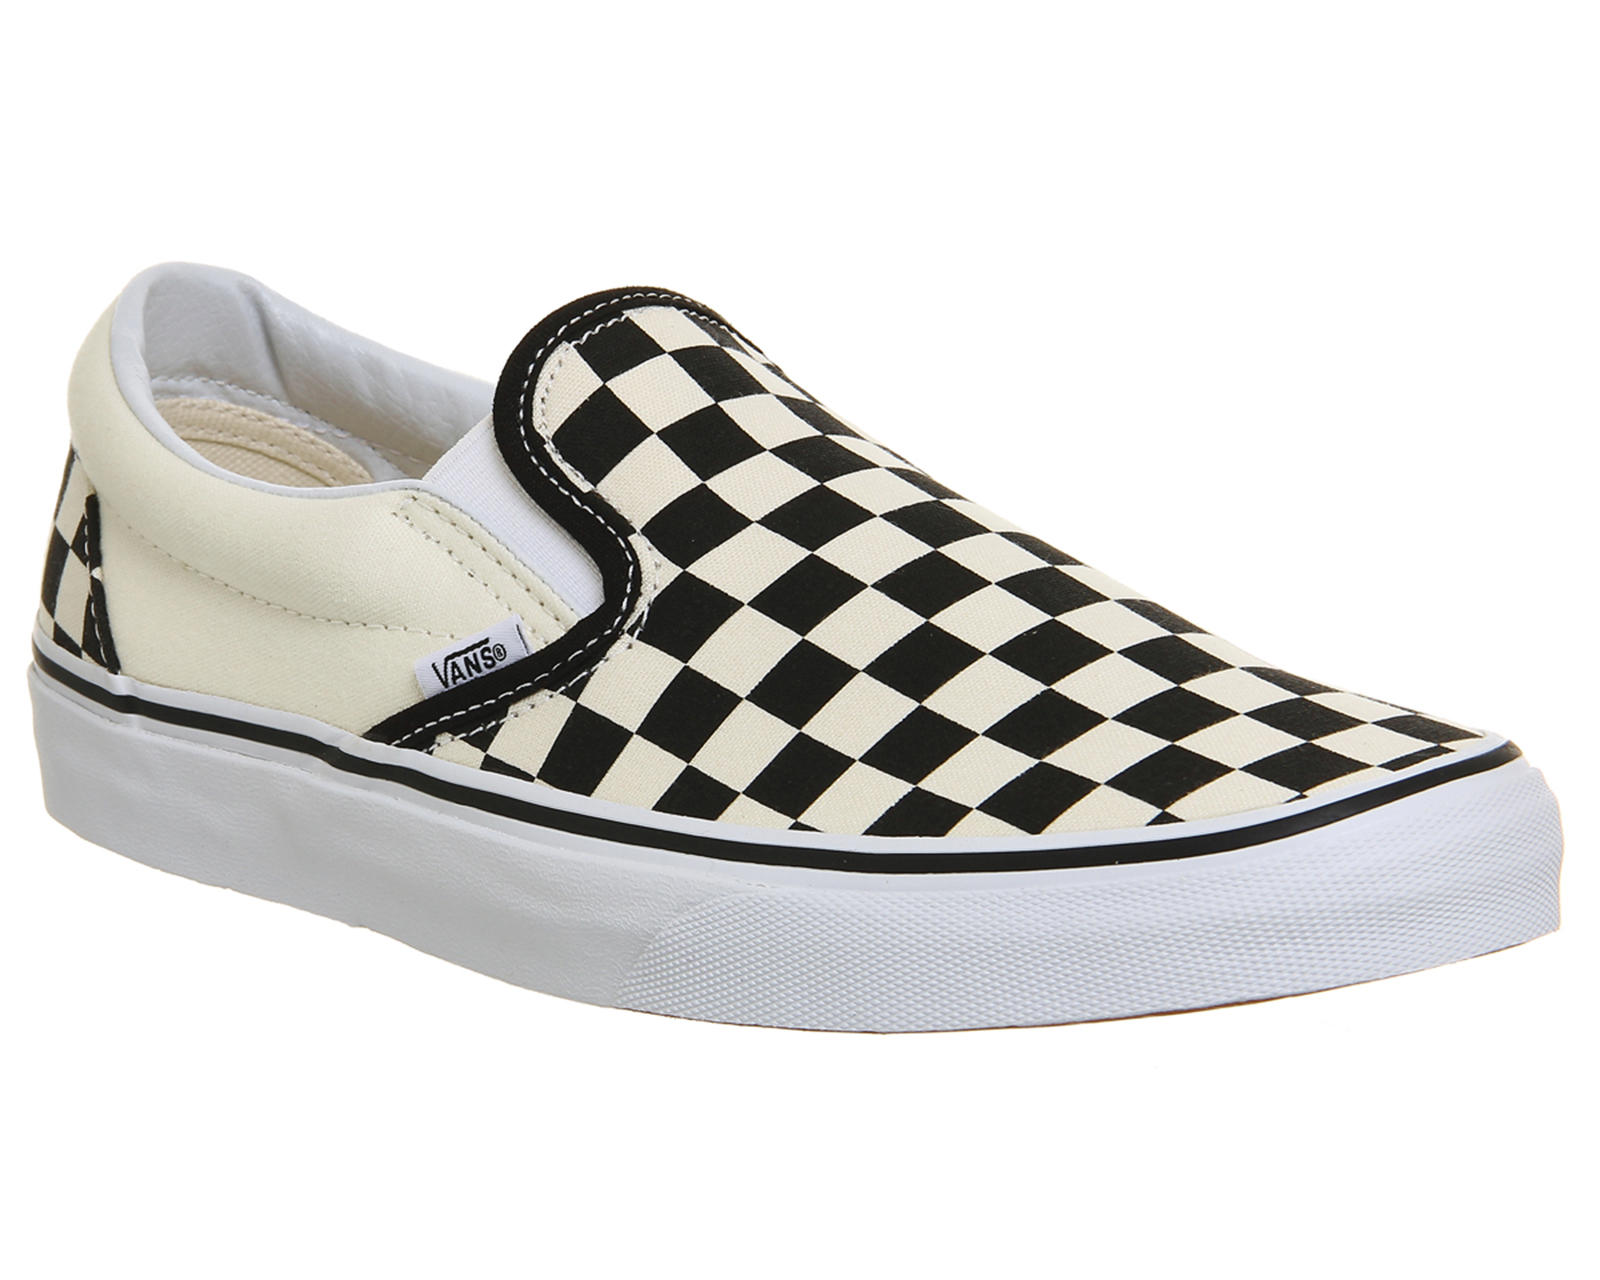 a587482a139c67 Sentinel Mens Vans Classic Slip On Trainers Black White Check Trainers Shoes